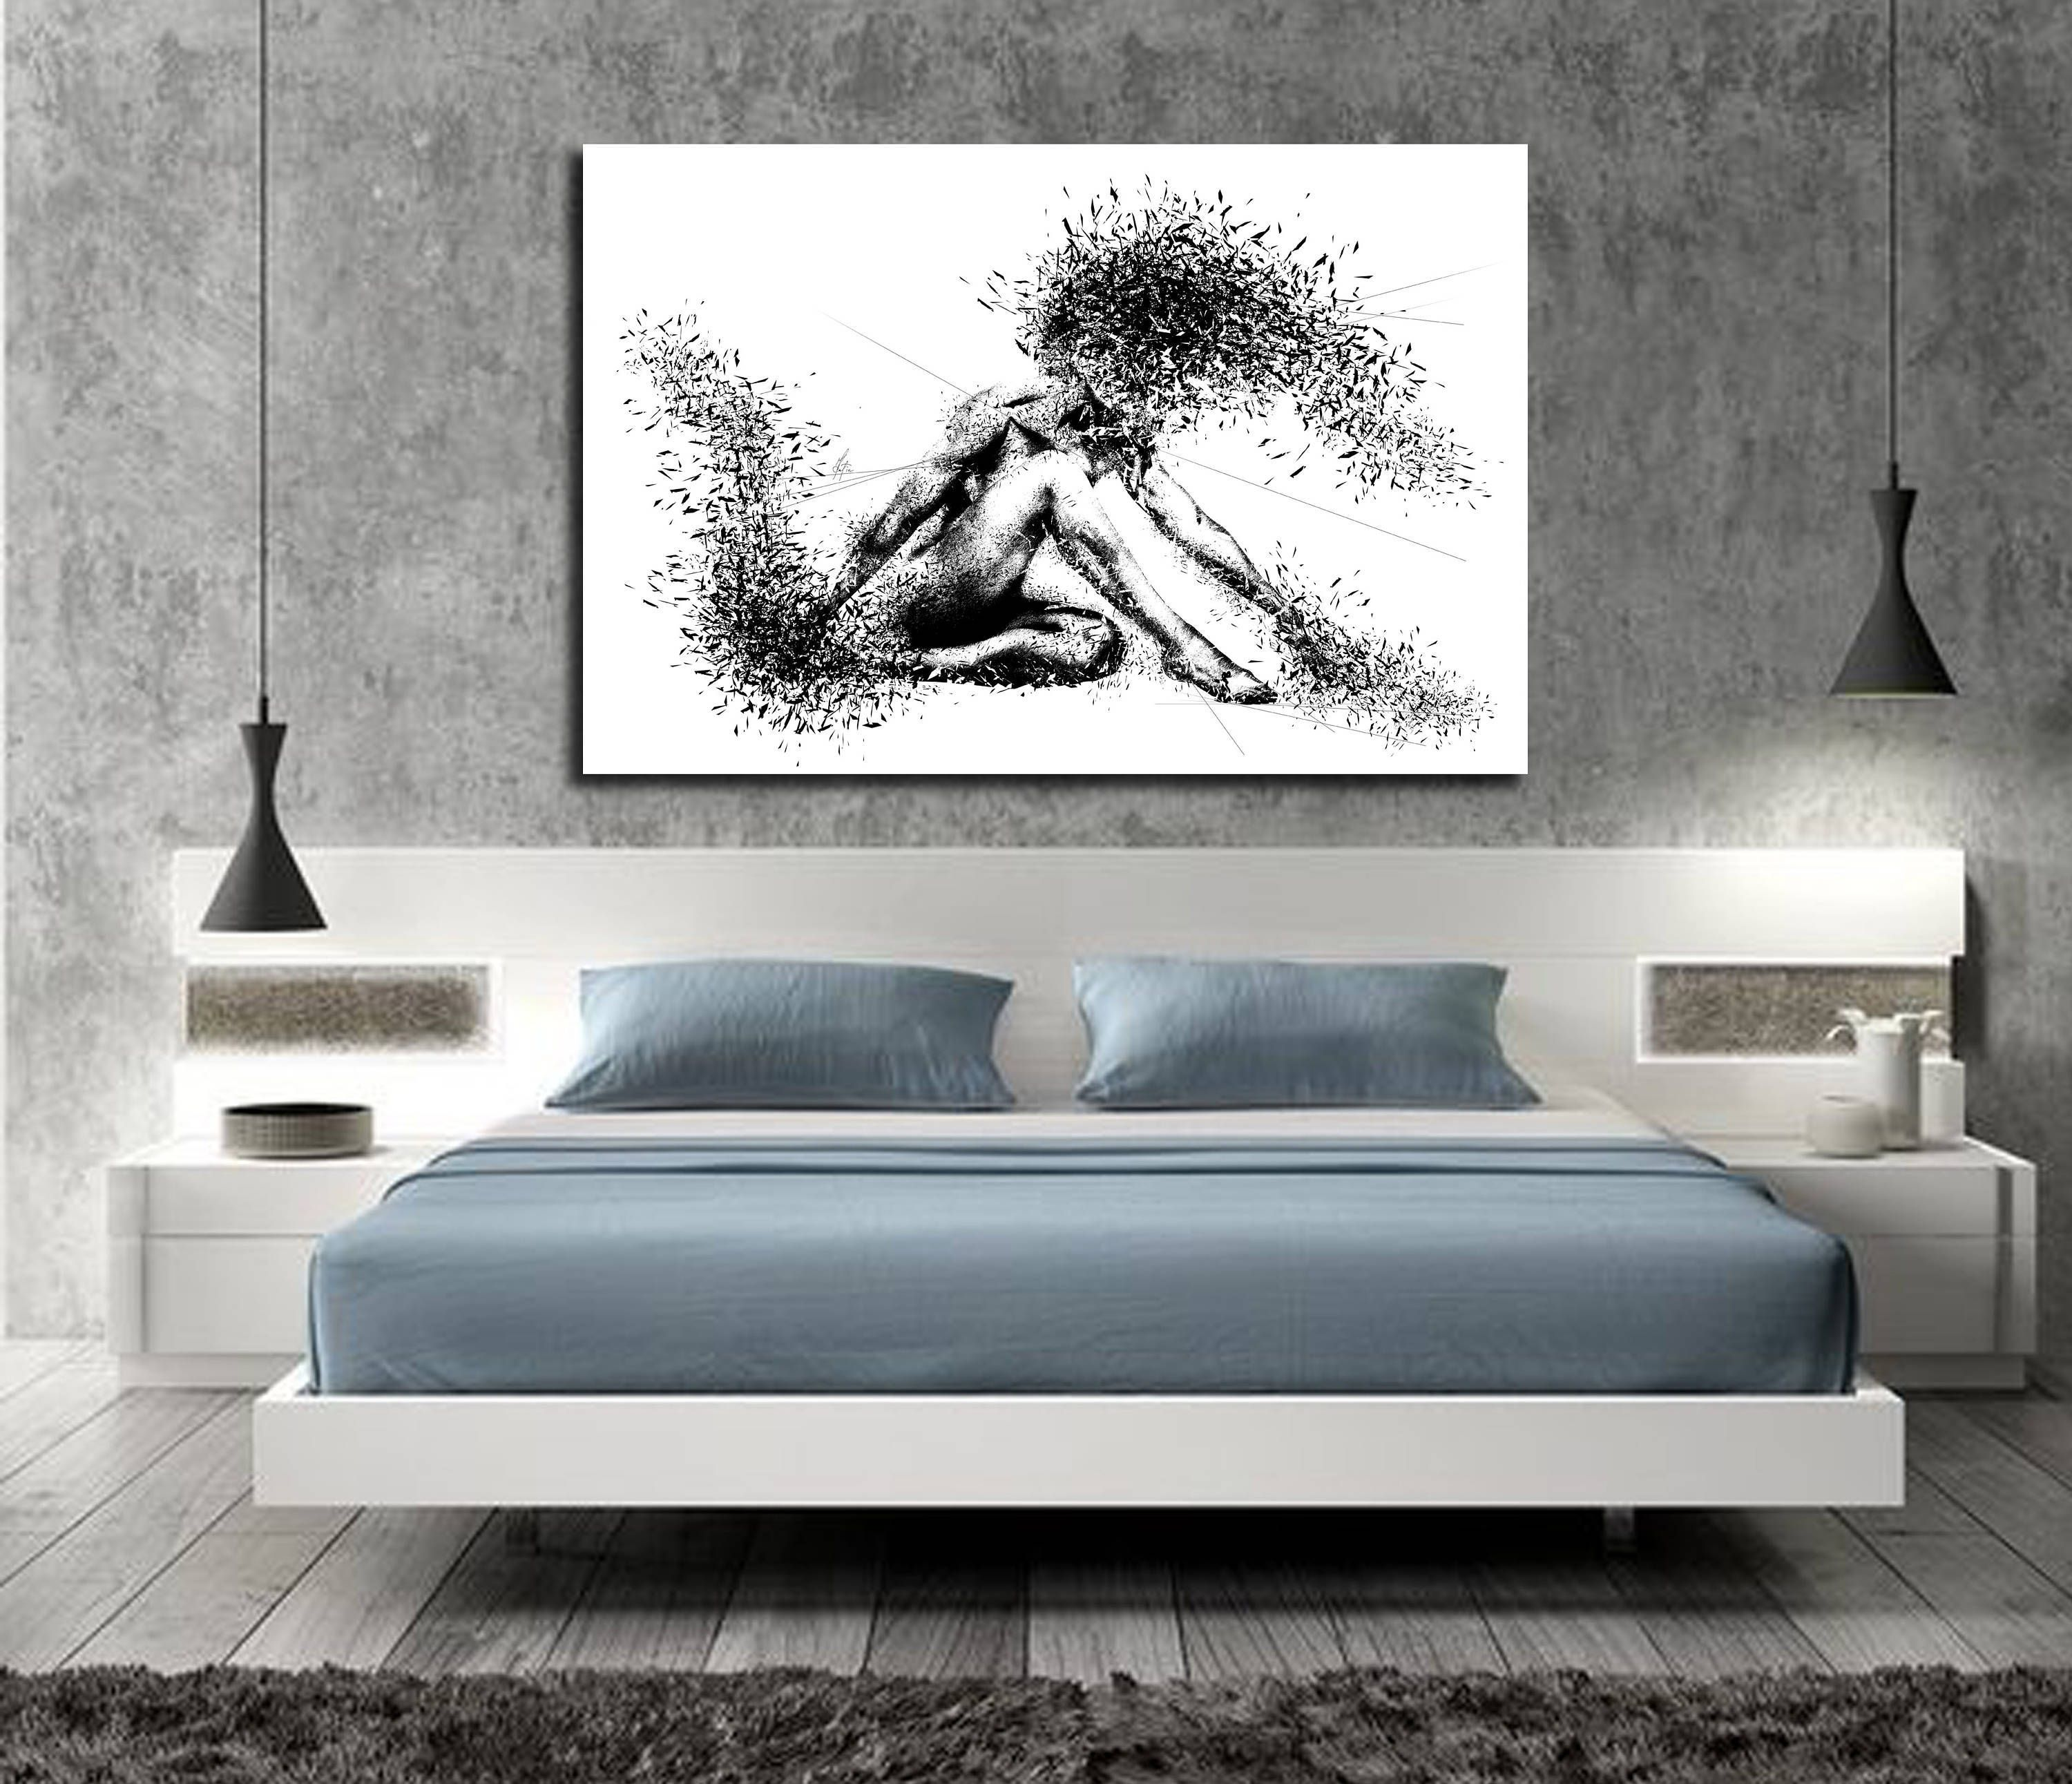 CANVAS ART Sensual Bedroom Wall Decor Minimalist Abstract Art Modern Erotic Master Bedroom Wall & CANVAS ART Sensual Bedroom Wall Decor Minimalist Abstract Art ...